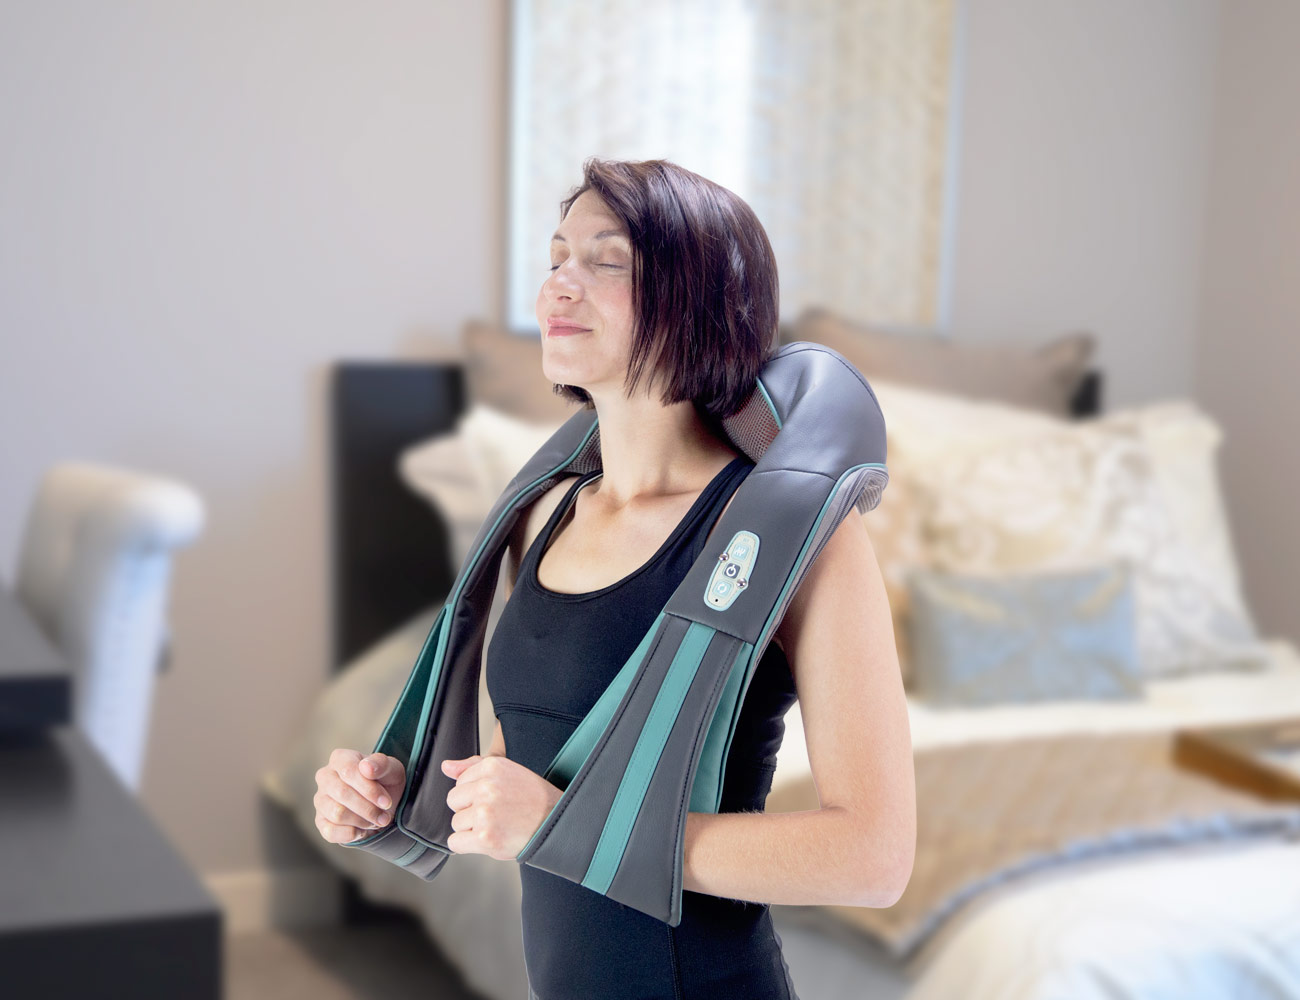 InstaShiatsu%2B+Neck+And+Back+Massager+With+Heat